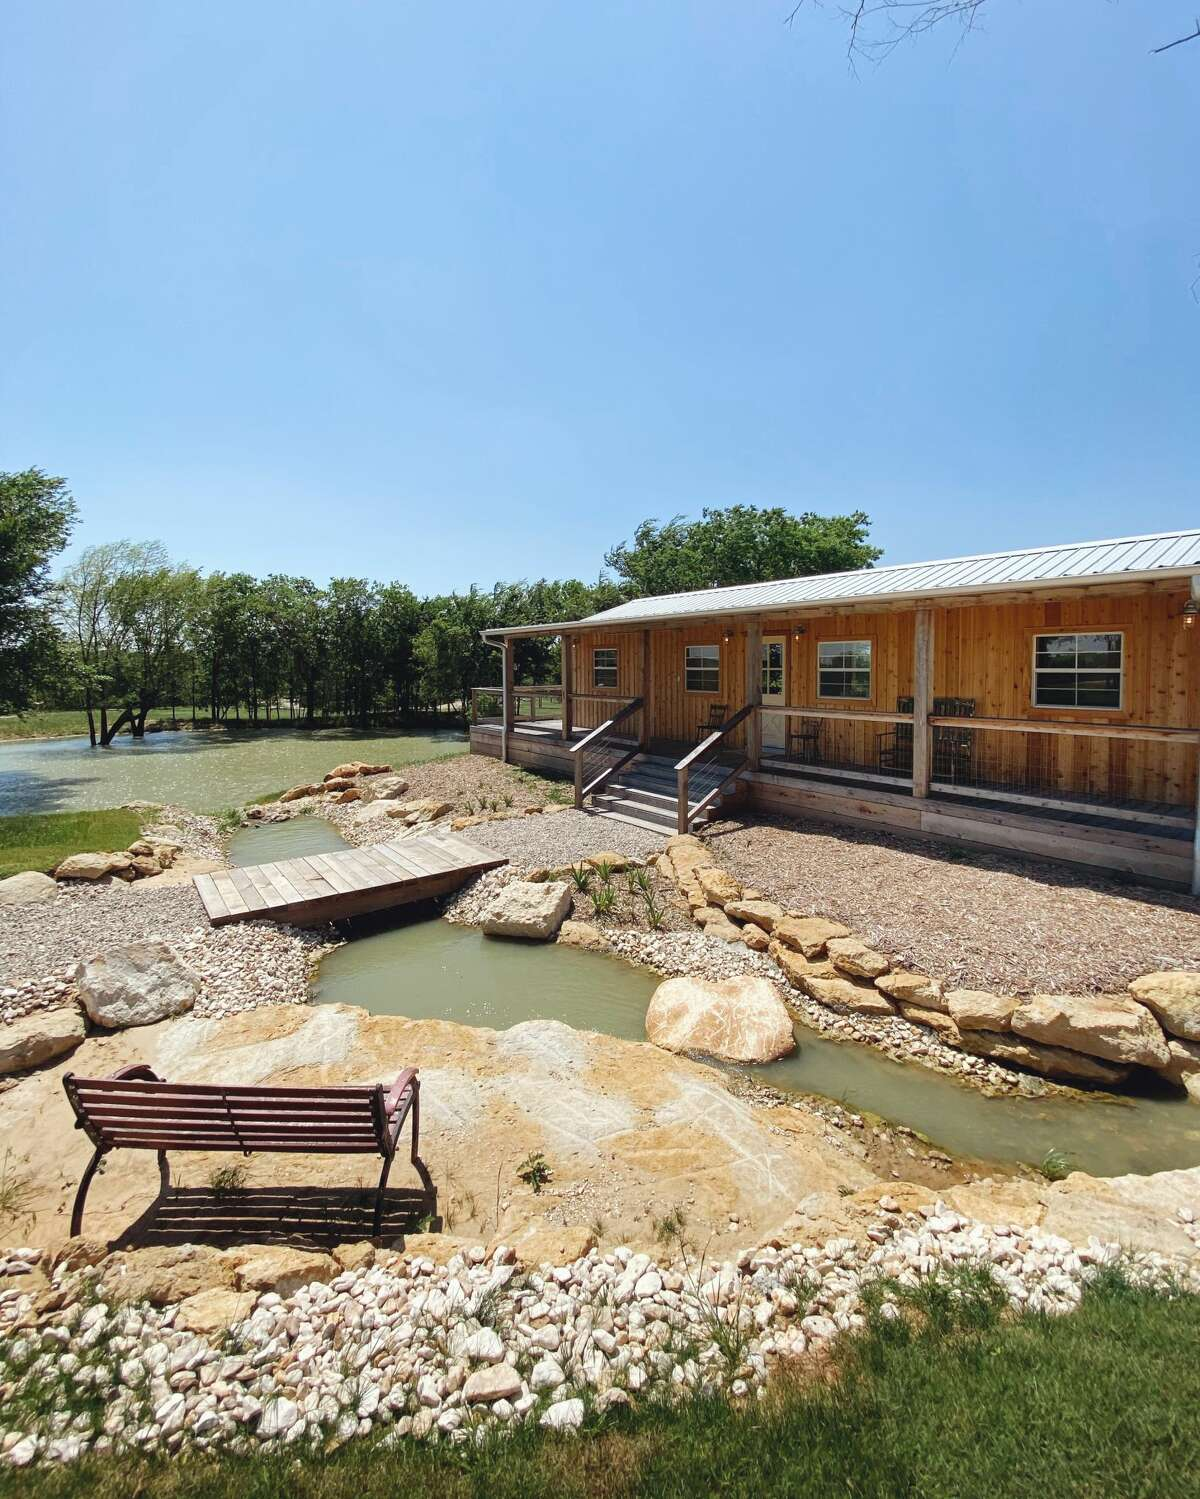 The Range Vintage Trailer Resort will open on June 1 along the Ennis Bluebonnet Trail in Bristol, Texas, just 30 minutes south of Dallas.